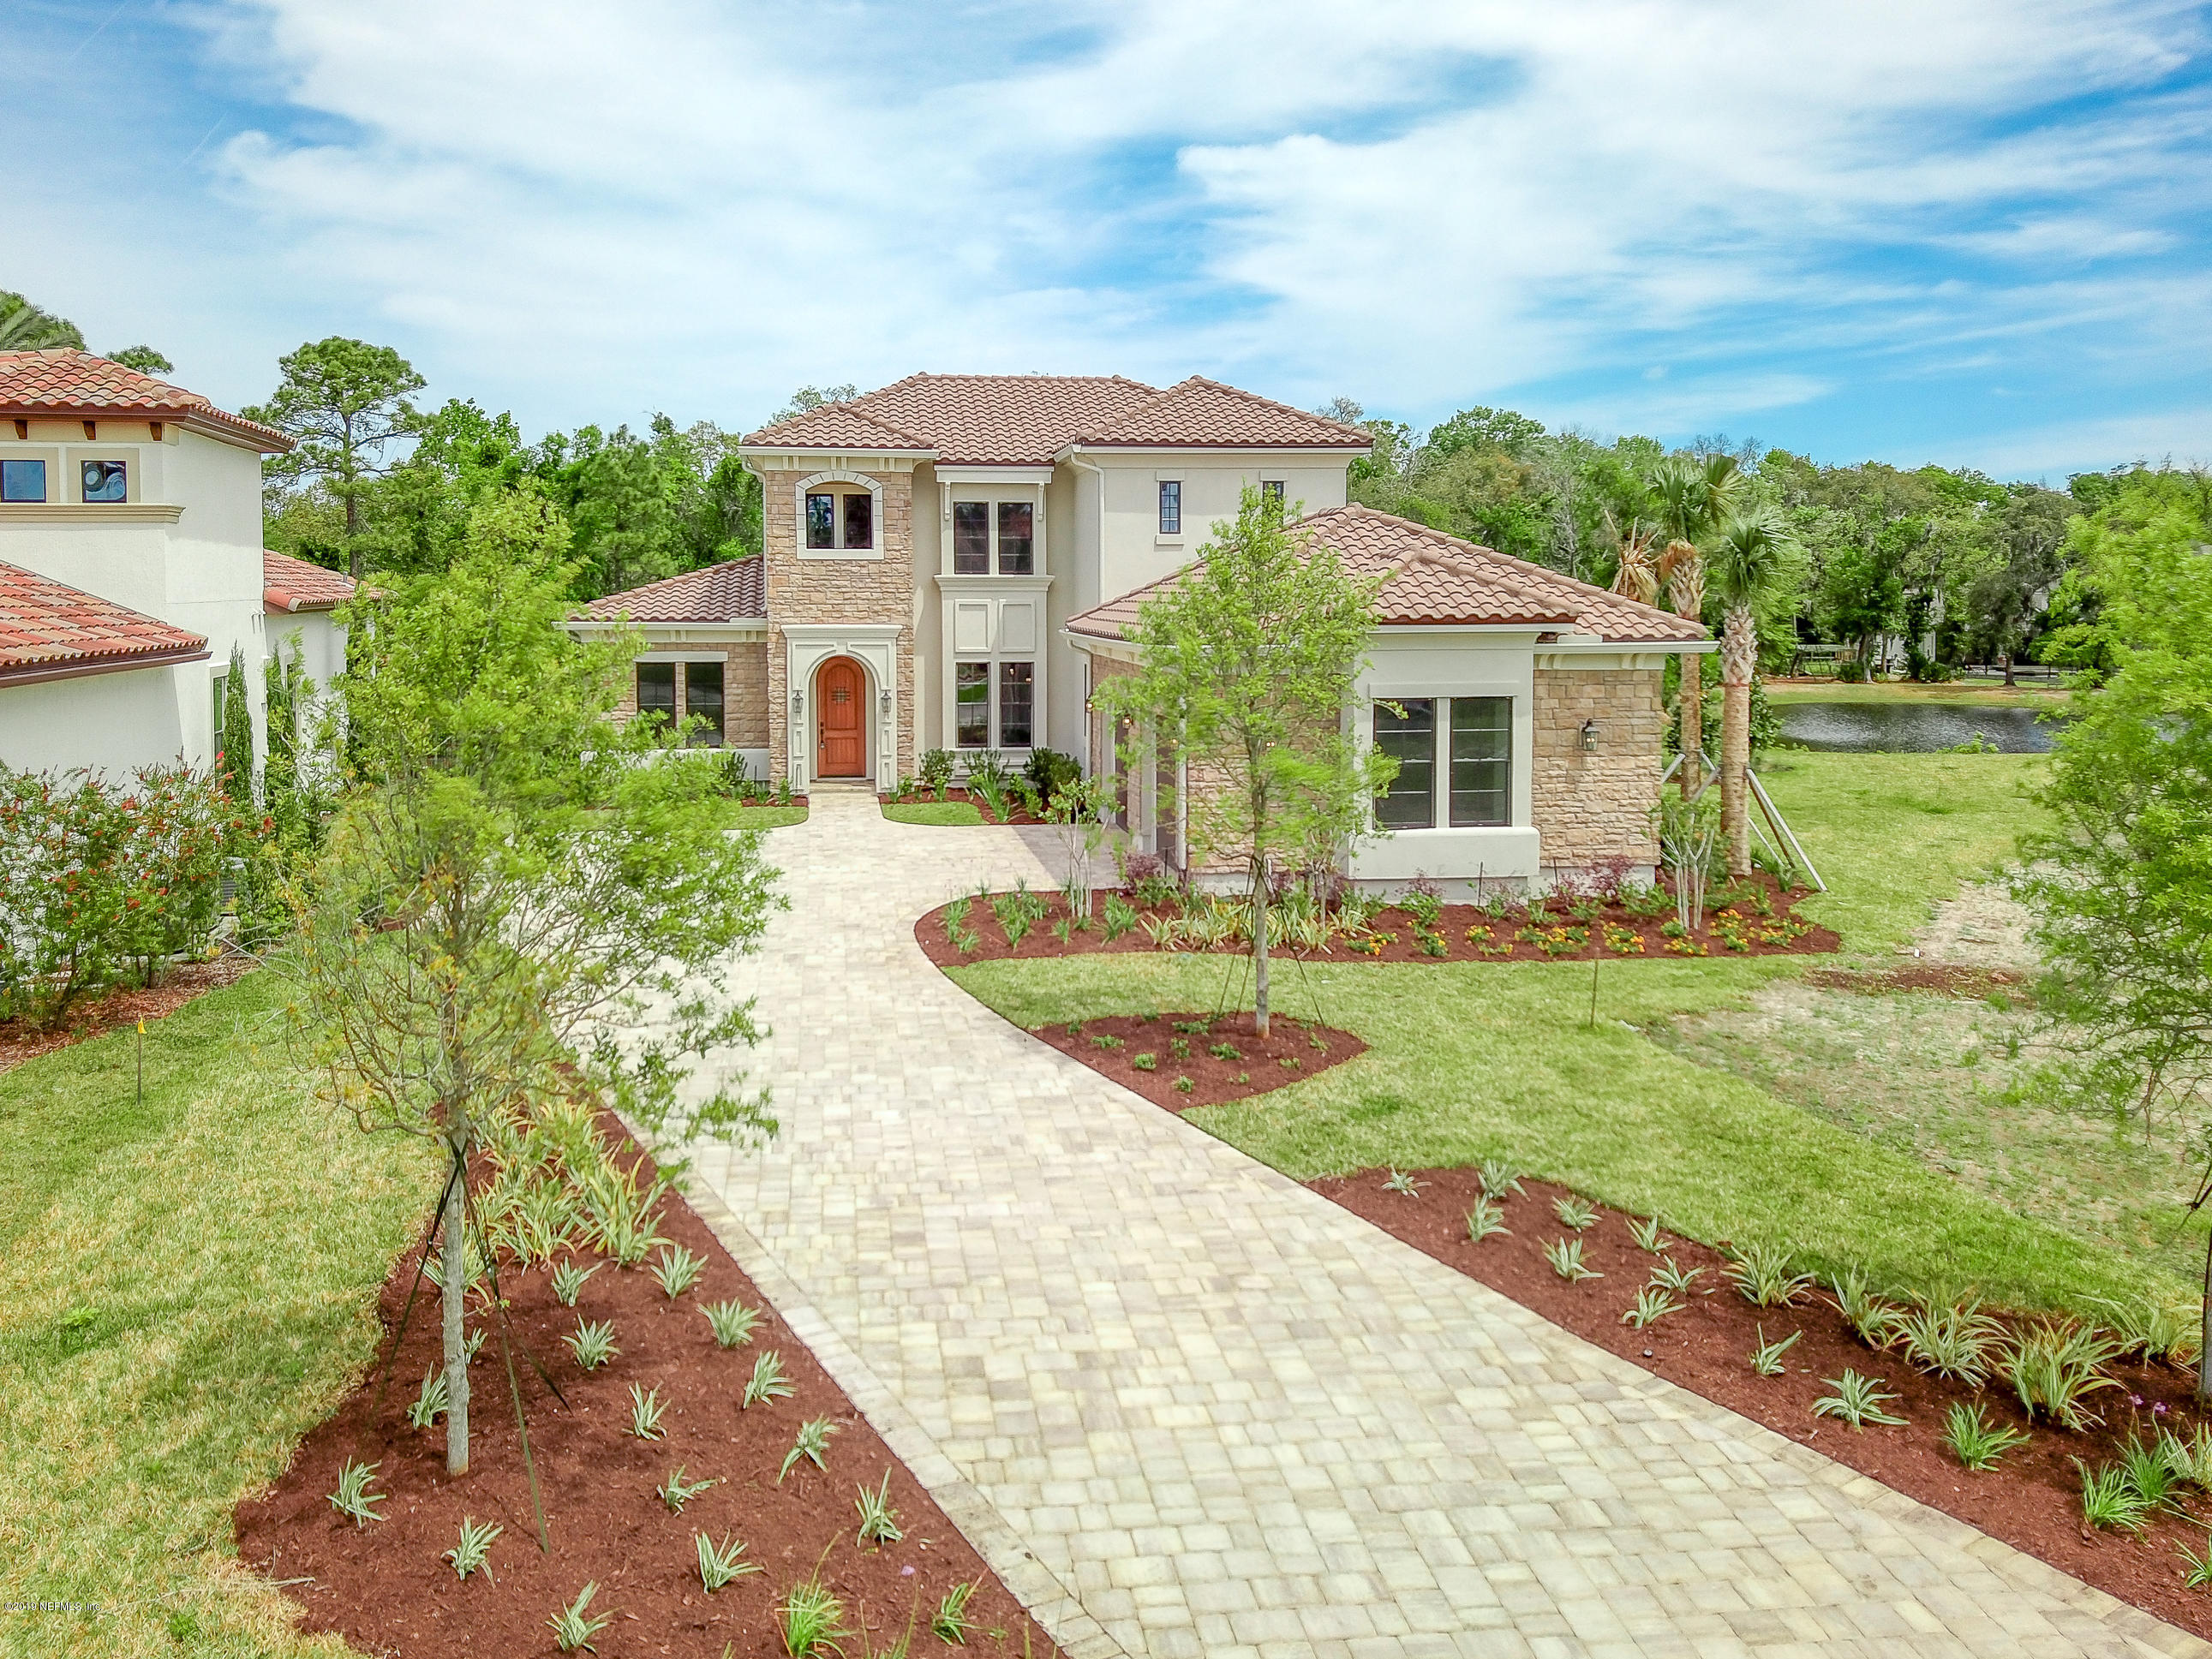 755 PROMENADE POINTE, ST AUGUSTINE, FLORIDA 32095, 4 Bedrooms Bedrooms, ,4 BathroomsBathrooms,Residential - single family,For sale,PROMENADE POINTE,988092